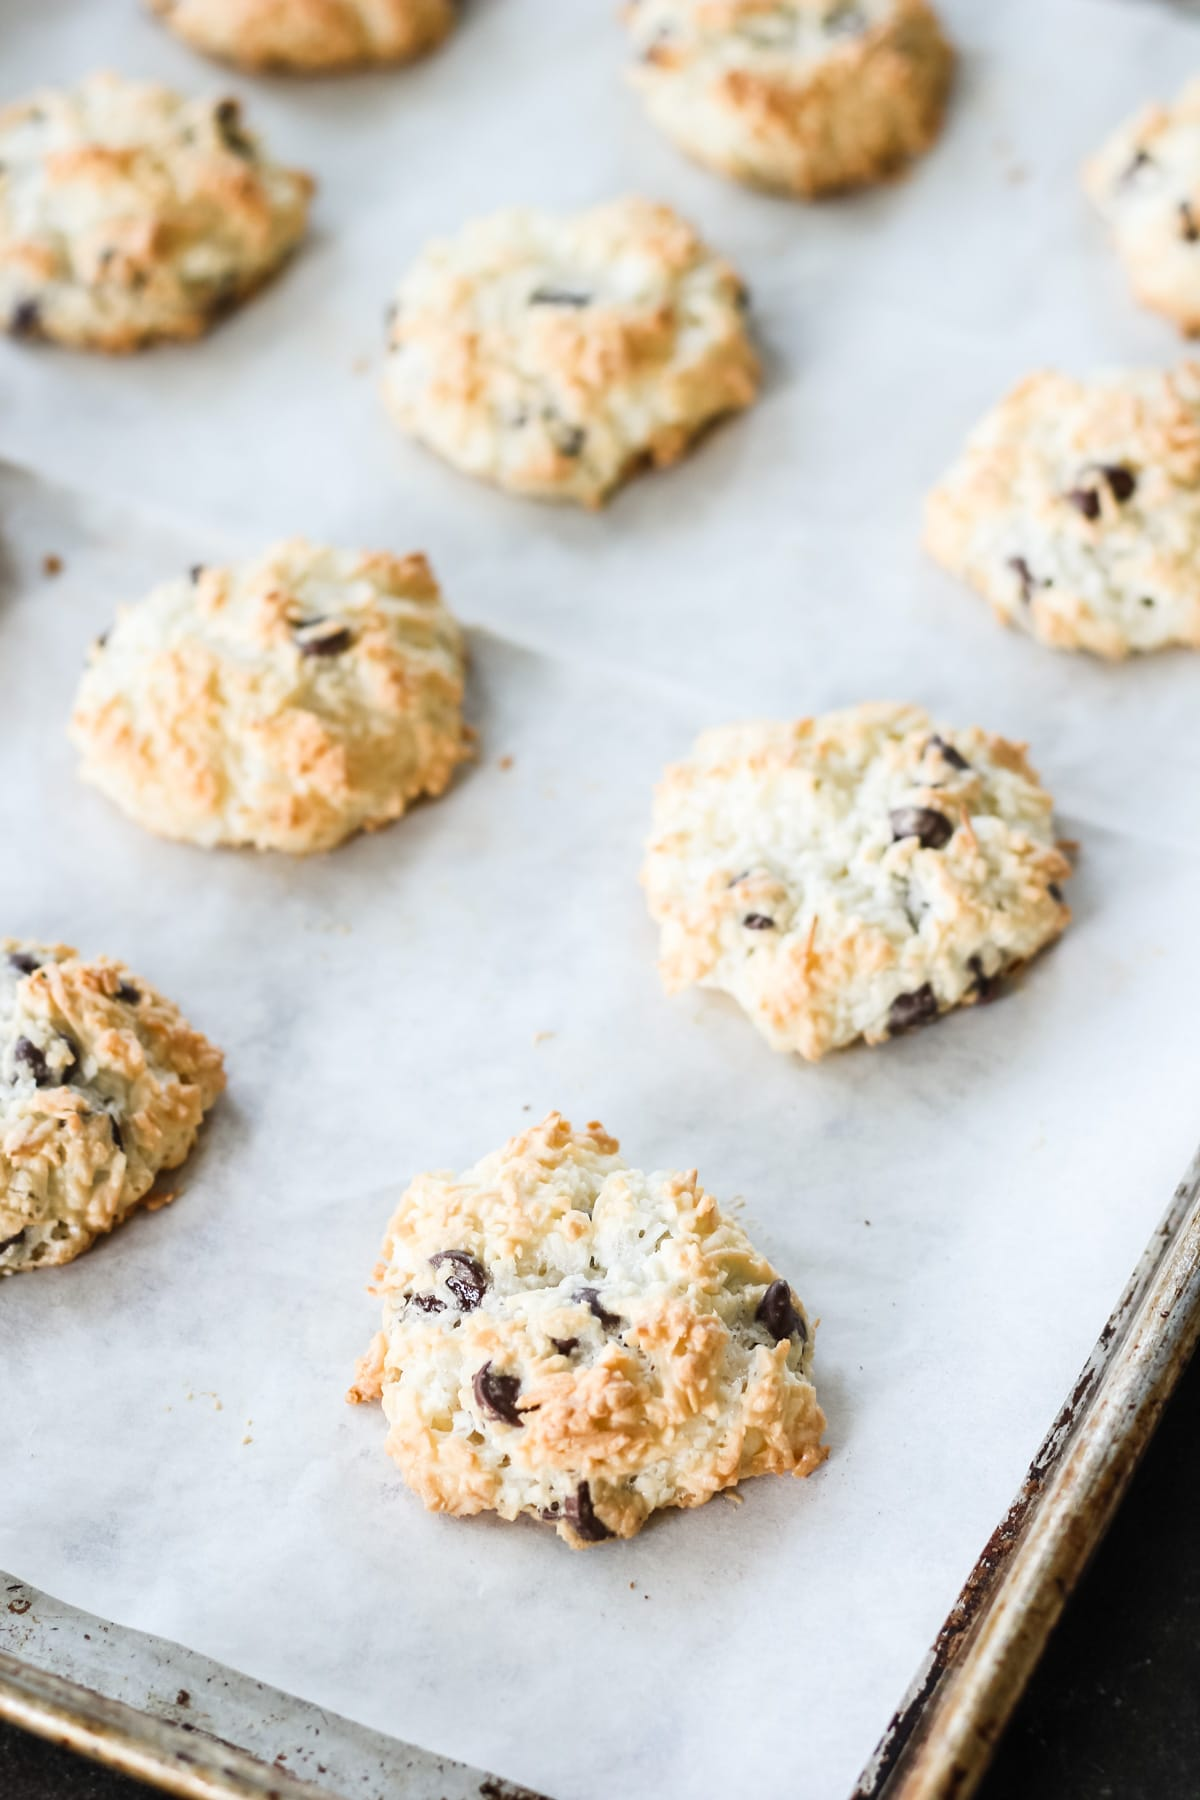 a close up view of freshly baked Chocolate Chip Coconut Macaroons on a parchment paper lined cookie sheet